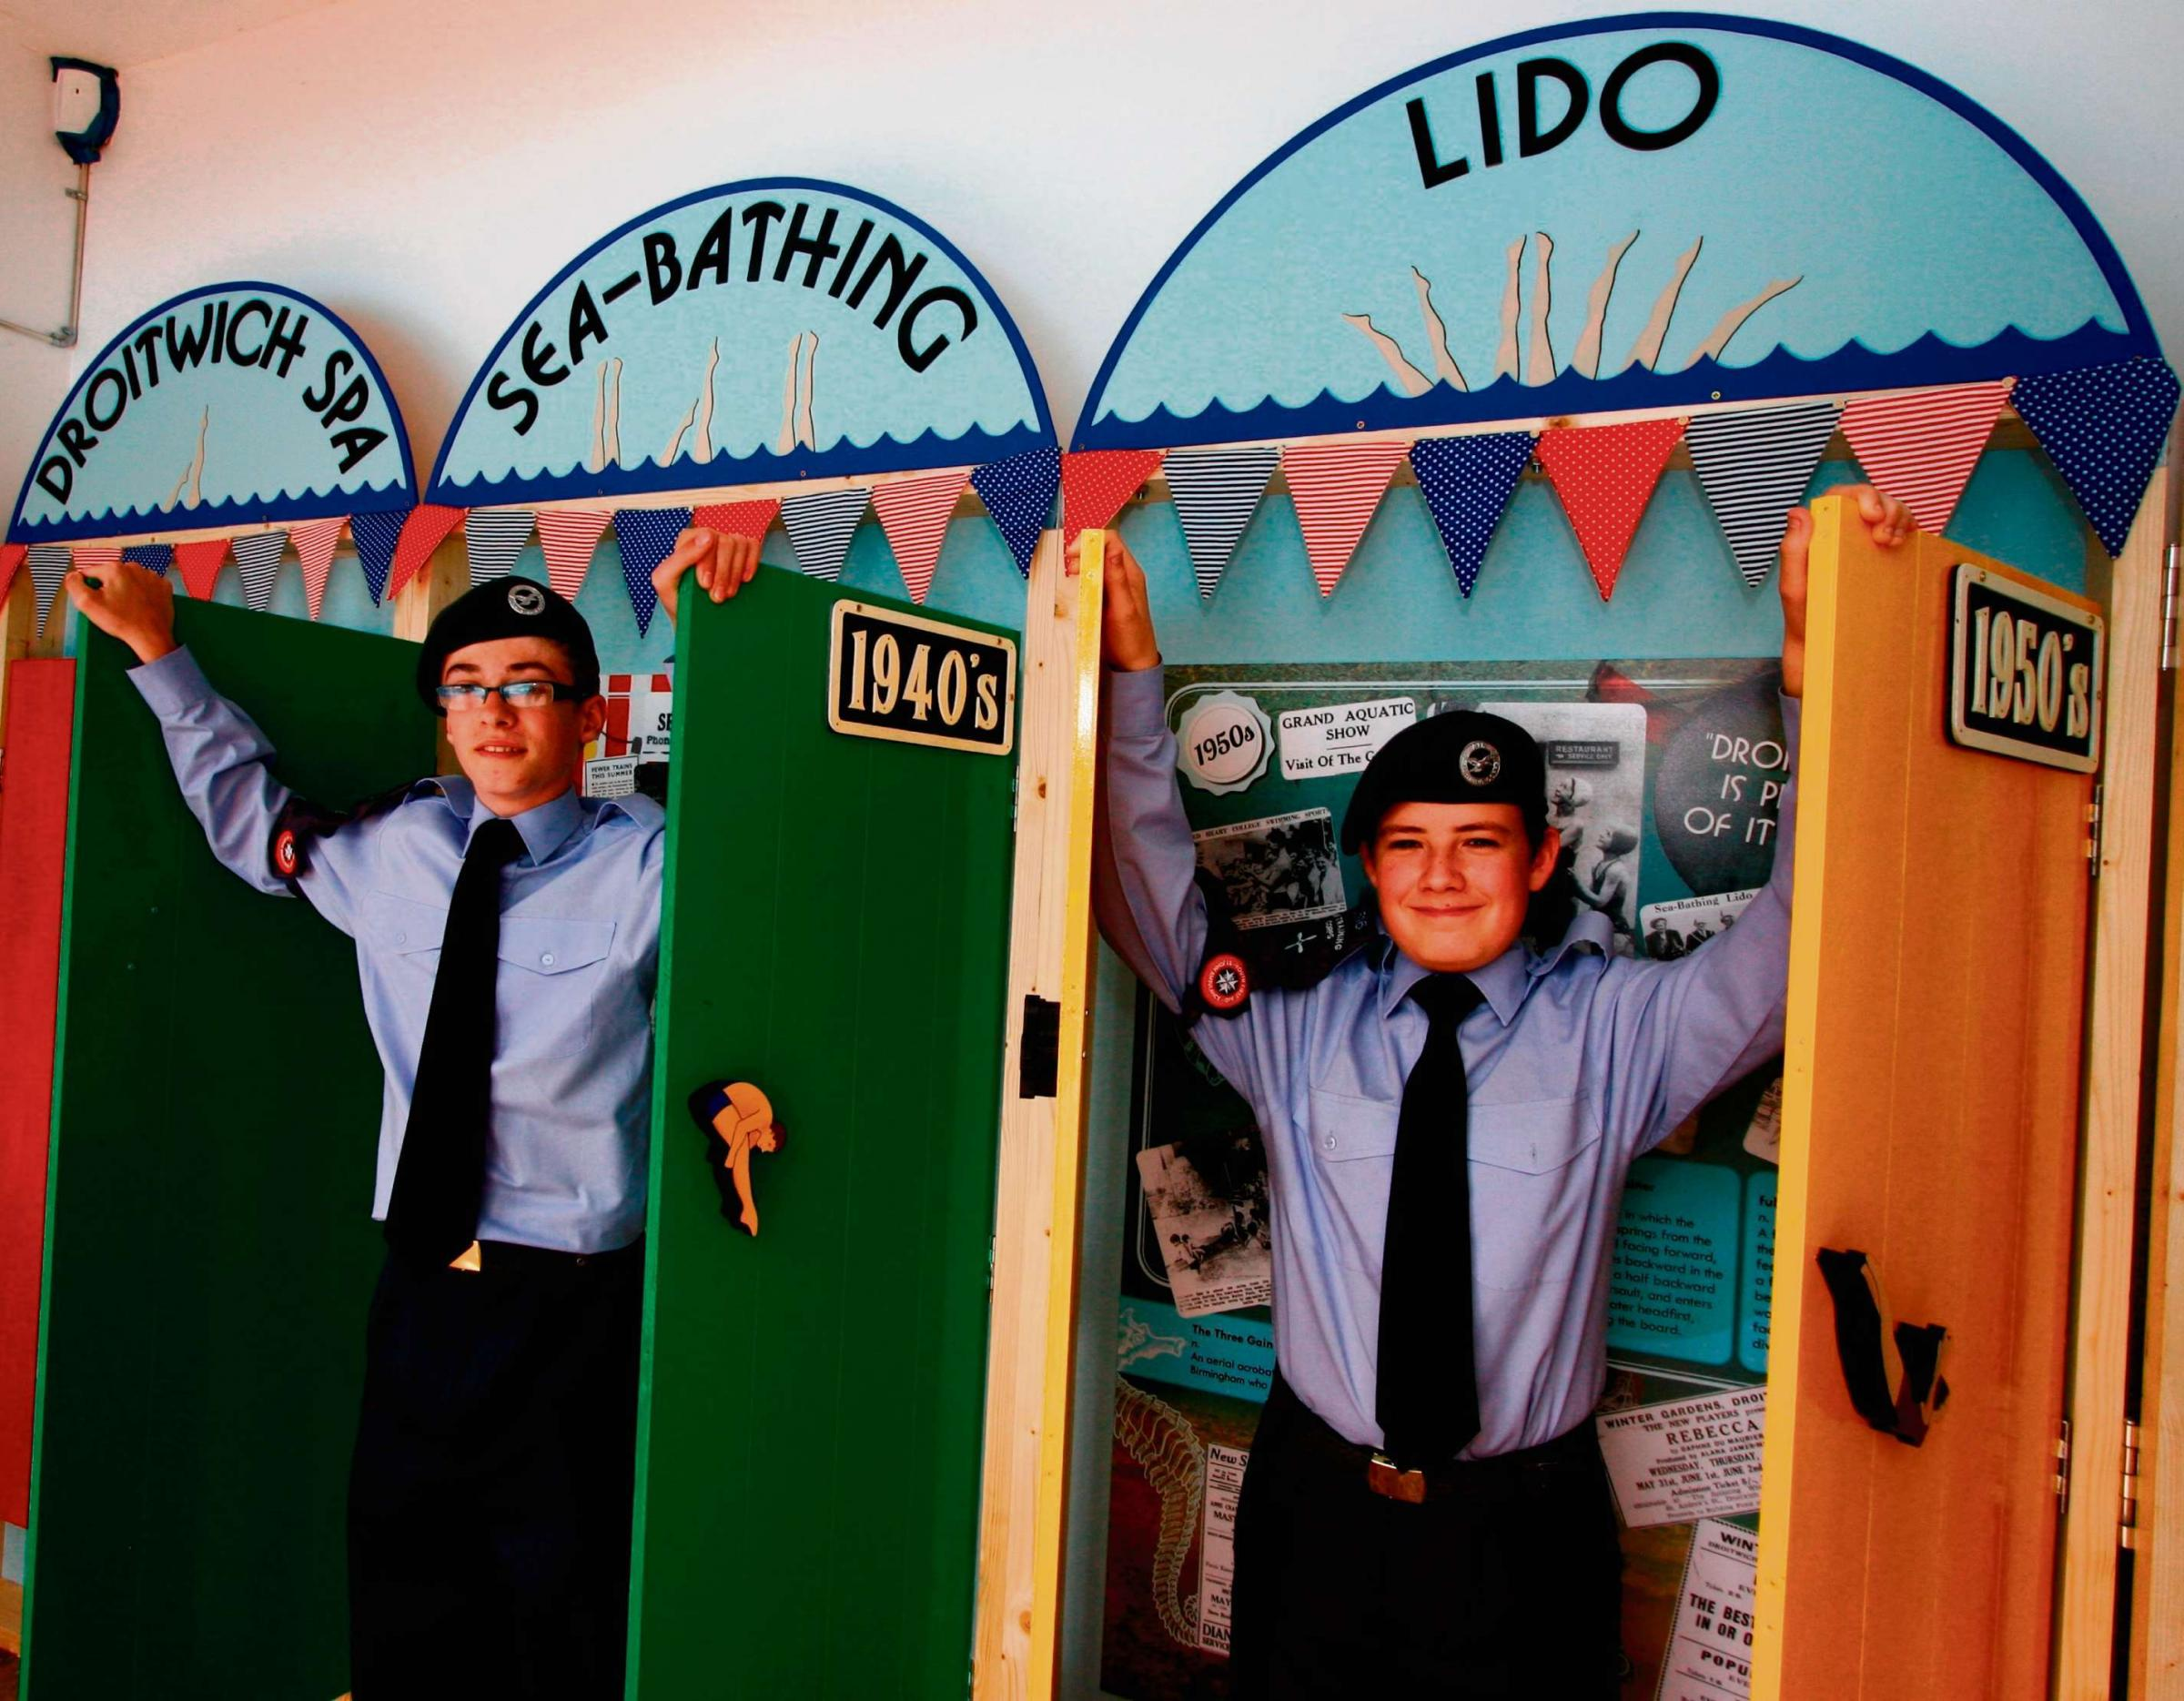 Sam Cooper and Gwyndaf Wheeler of the Droitwich Air Cadets with the exhibition at the Lido. sP